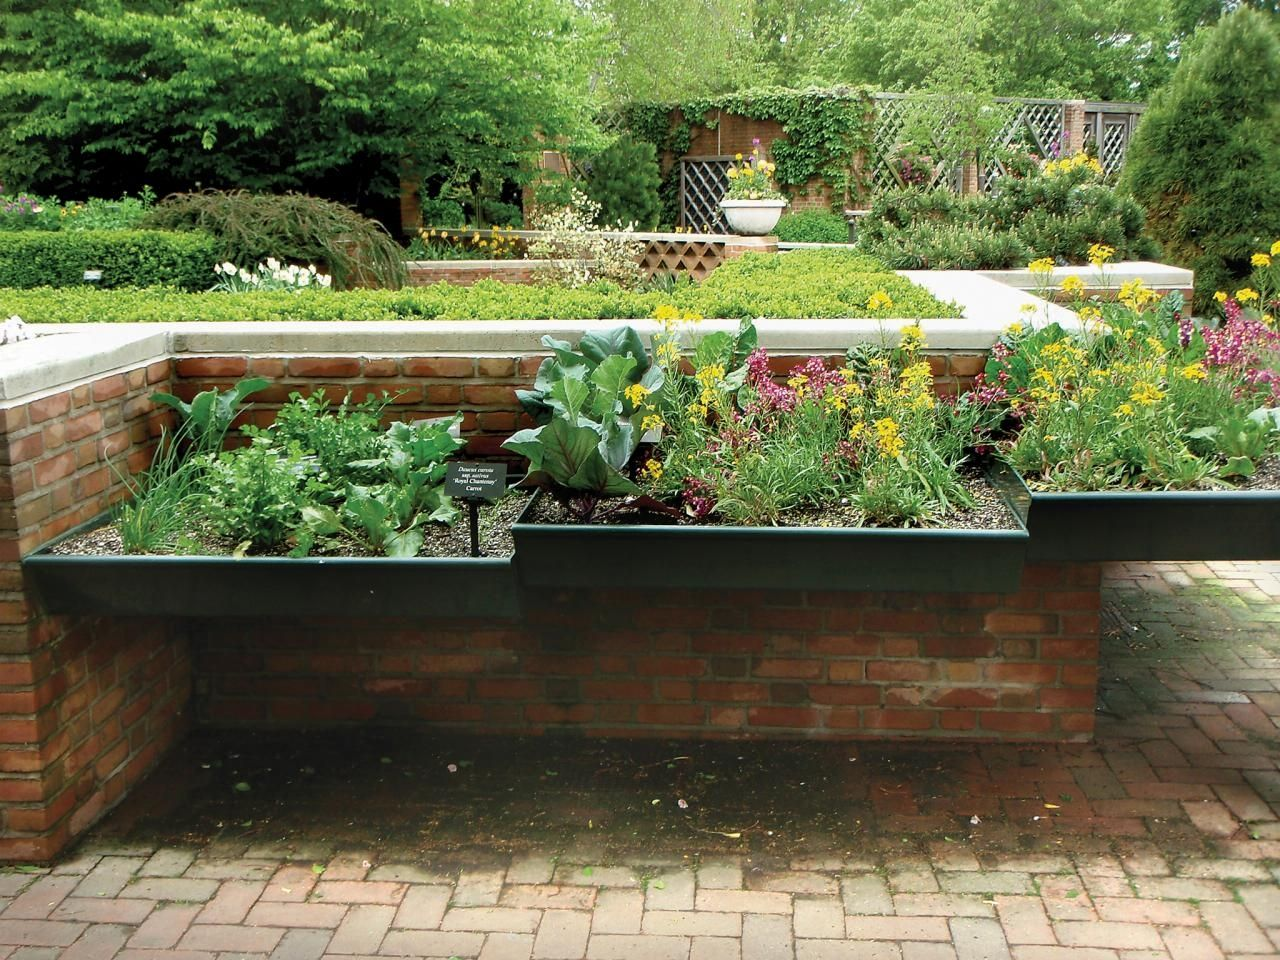 Vegetable Garden Retaining Wall Ideas | //umadepa.com ... on concrete raised garden beds designs, brick and concrete center designs, concrete raised flower bed designs, raised bed vegetable garden designs,